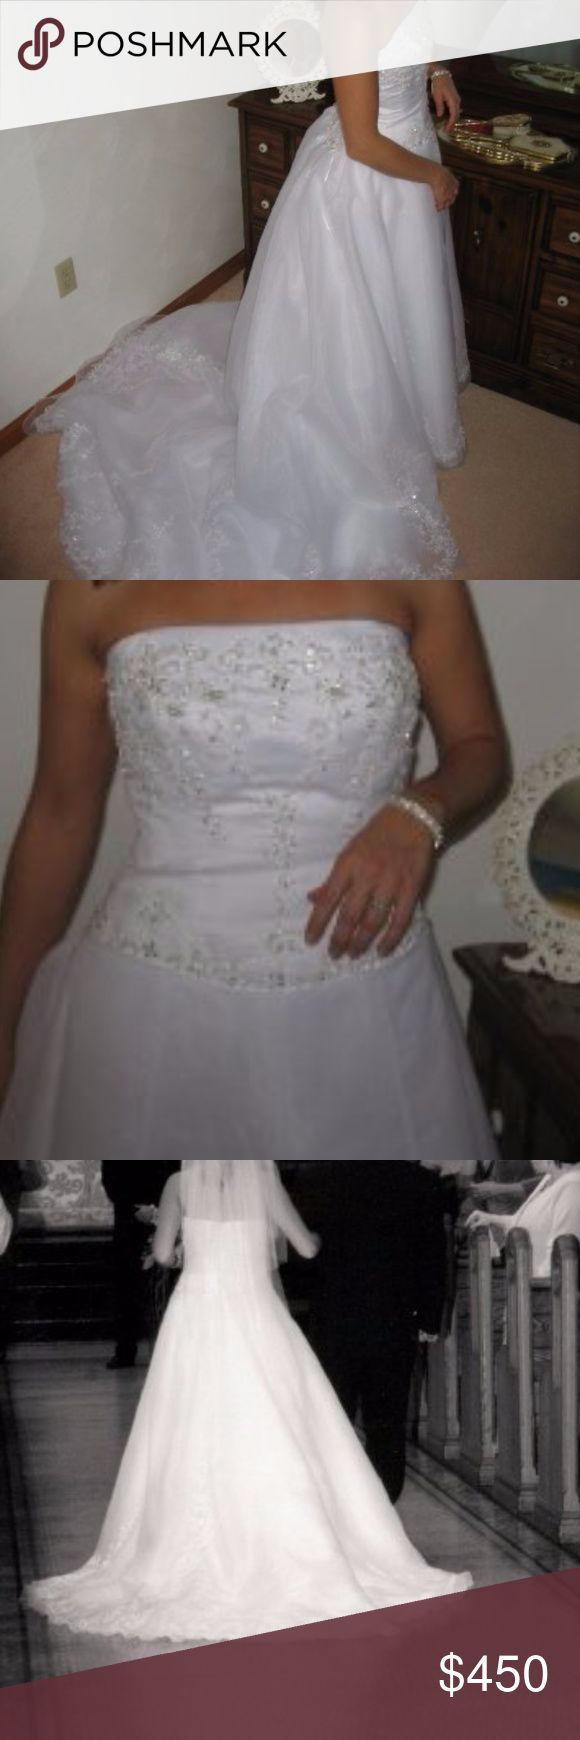 Casablanca Wedding Dress Beautiful Casablanca Wedding Gown. It's a size 10 that was taken in only at the top with ribbon tie bustles.  Pretty chiffon and lace appliques.  I has been professional cleaned and steamed. Casablanca Dresses Wedding